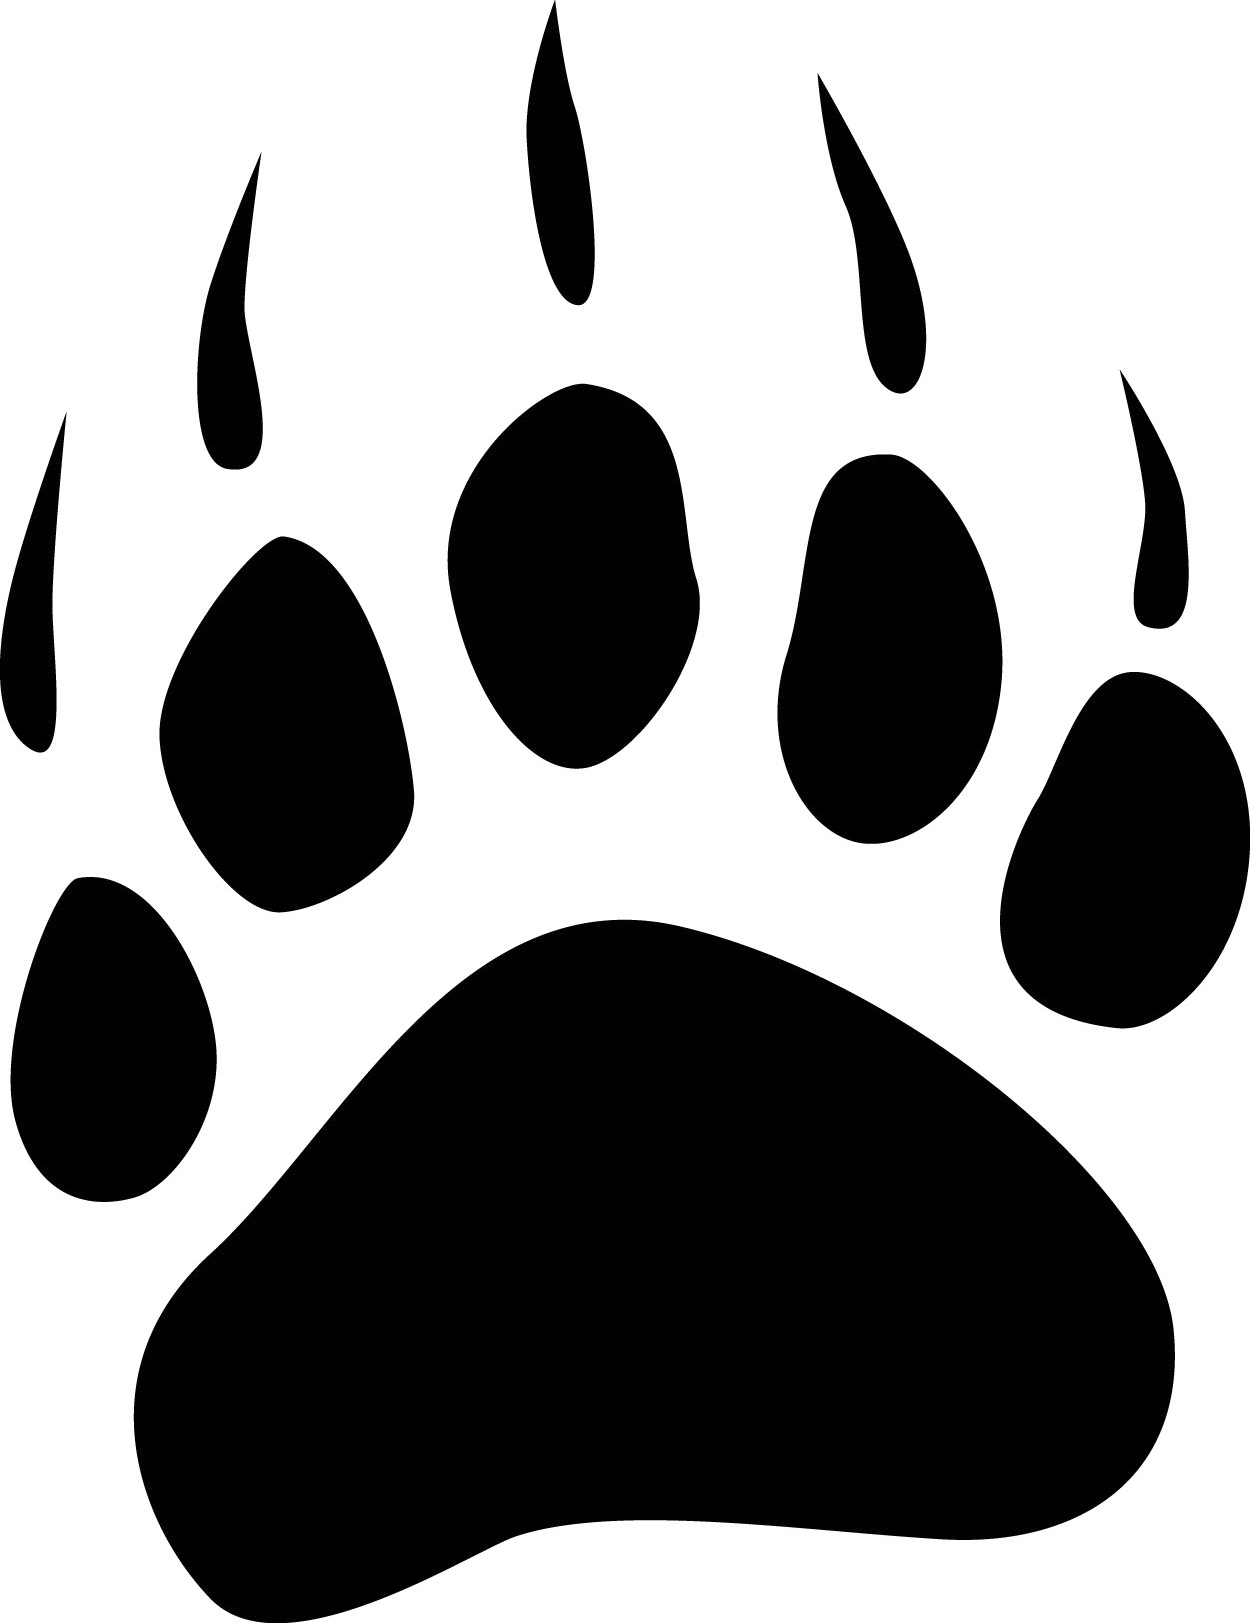 Paw print clipart jpeg transparent download Teddy Bear Paw Print Clipart - Clipart Kid transparent download